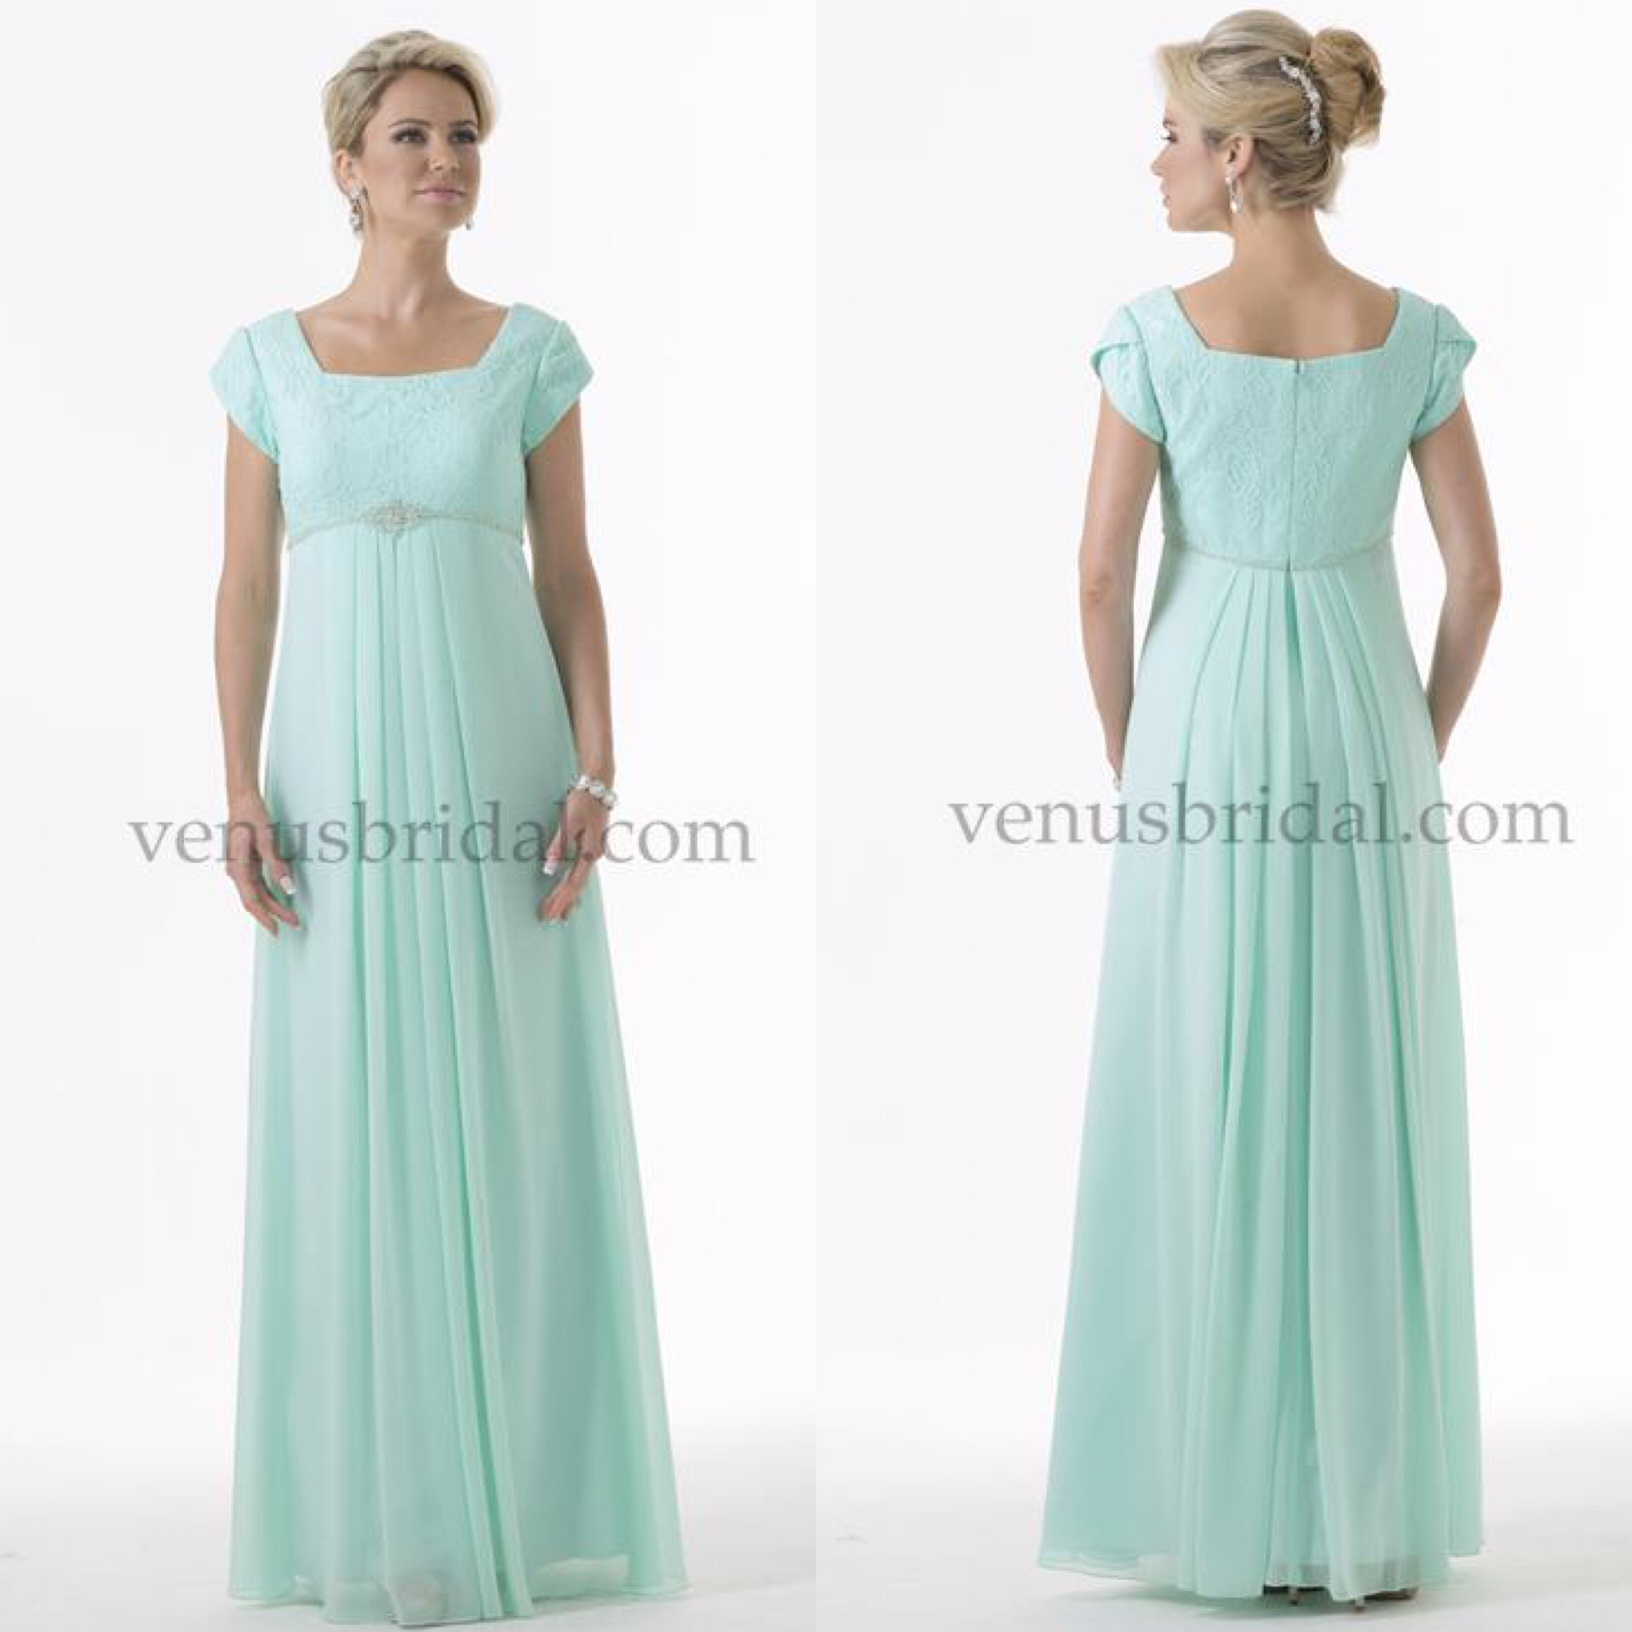 Formal Collection 1 - The Hitching Post - Modest Wedding Dresses ...